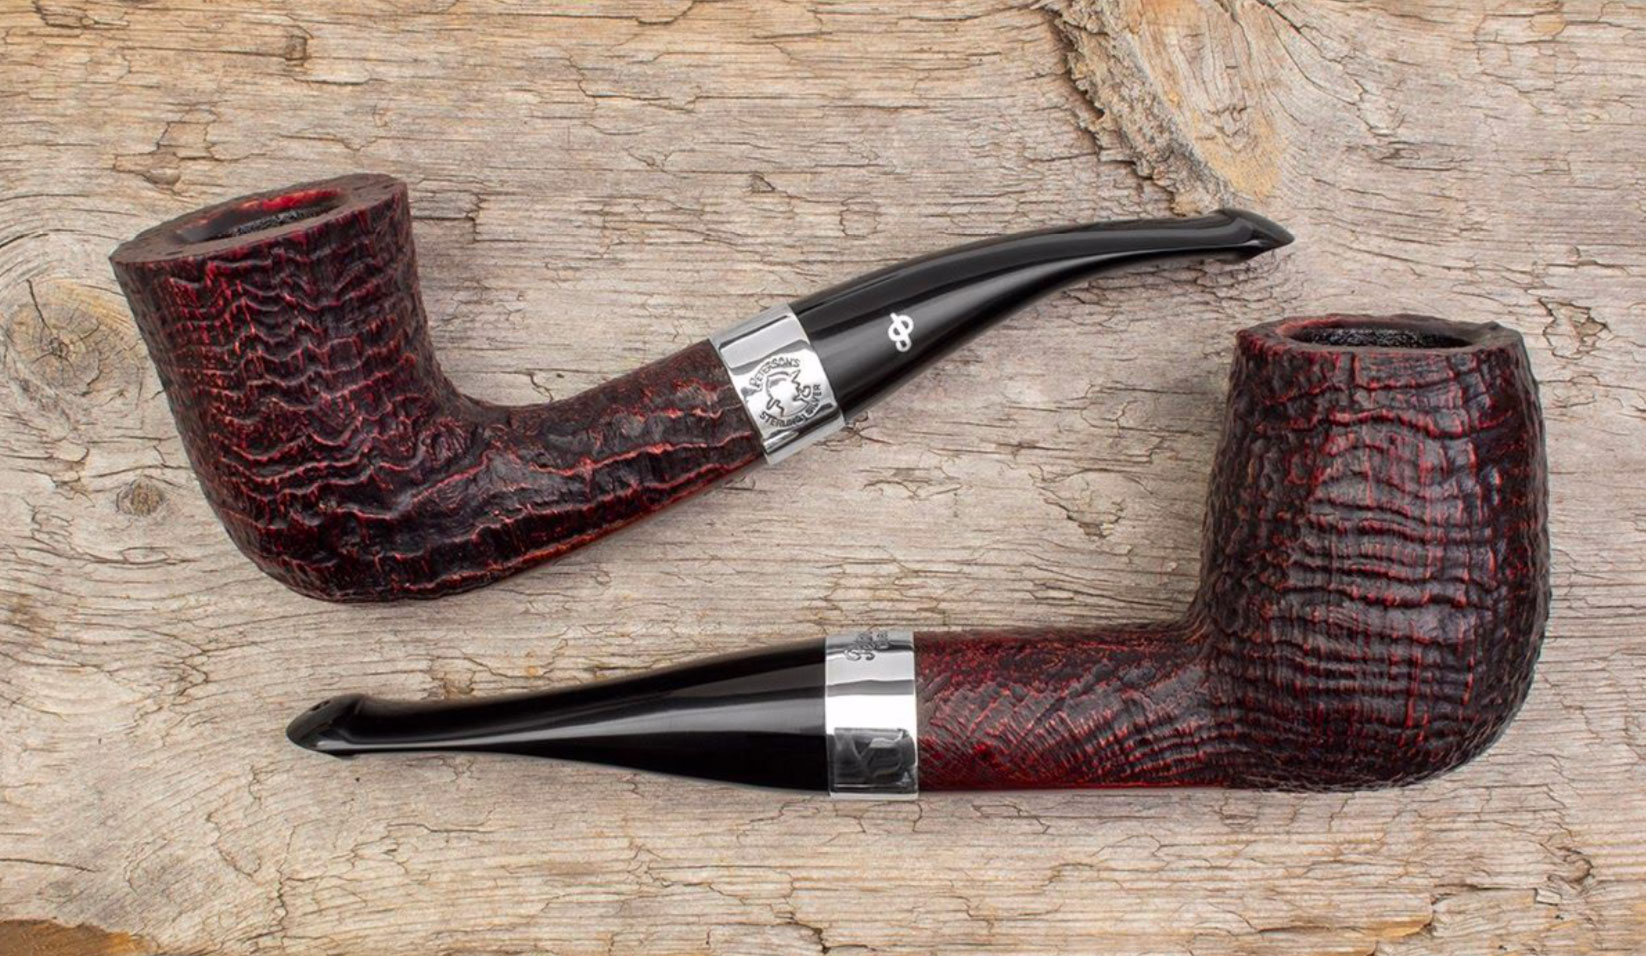 Kapp & Peterson Announces New Peterson Special Blast Grade